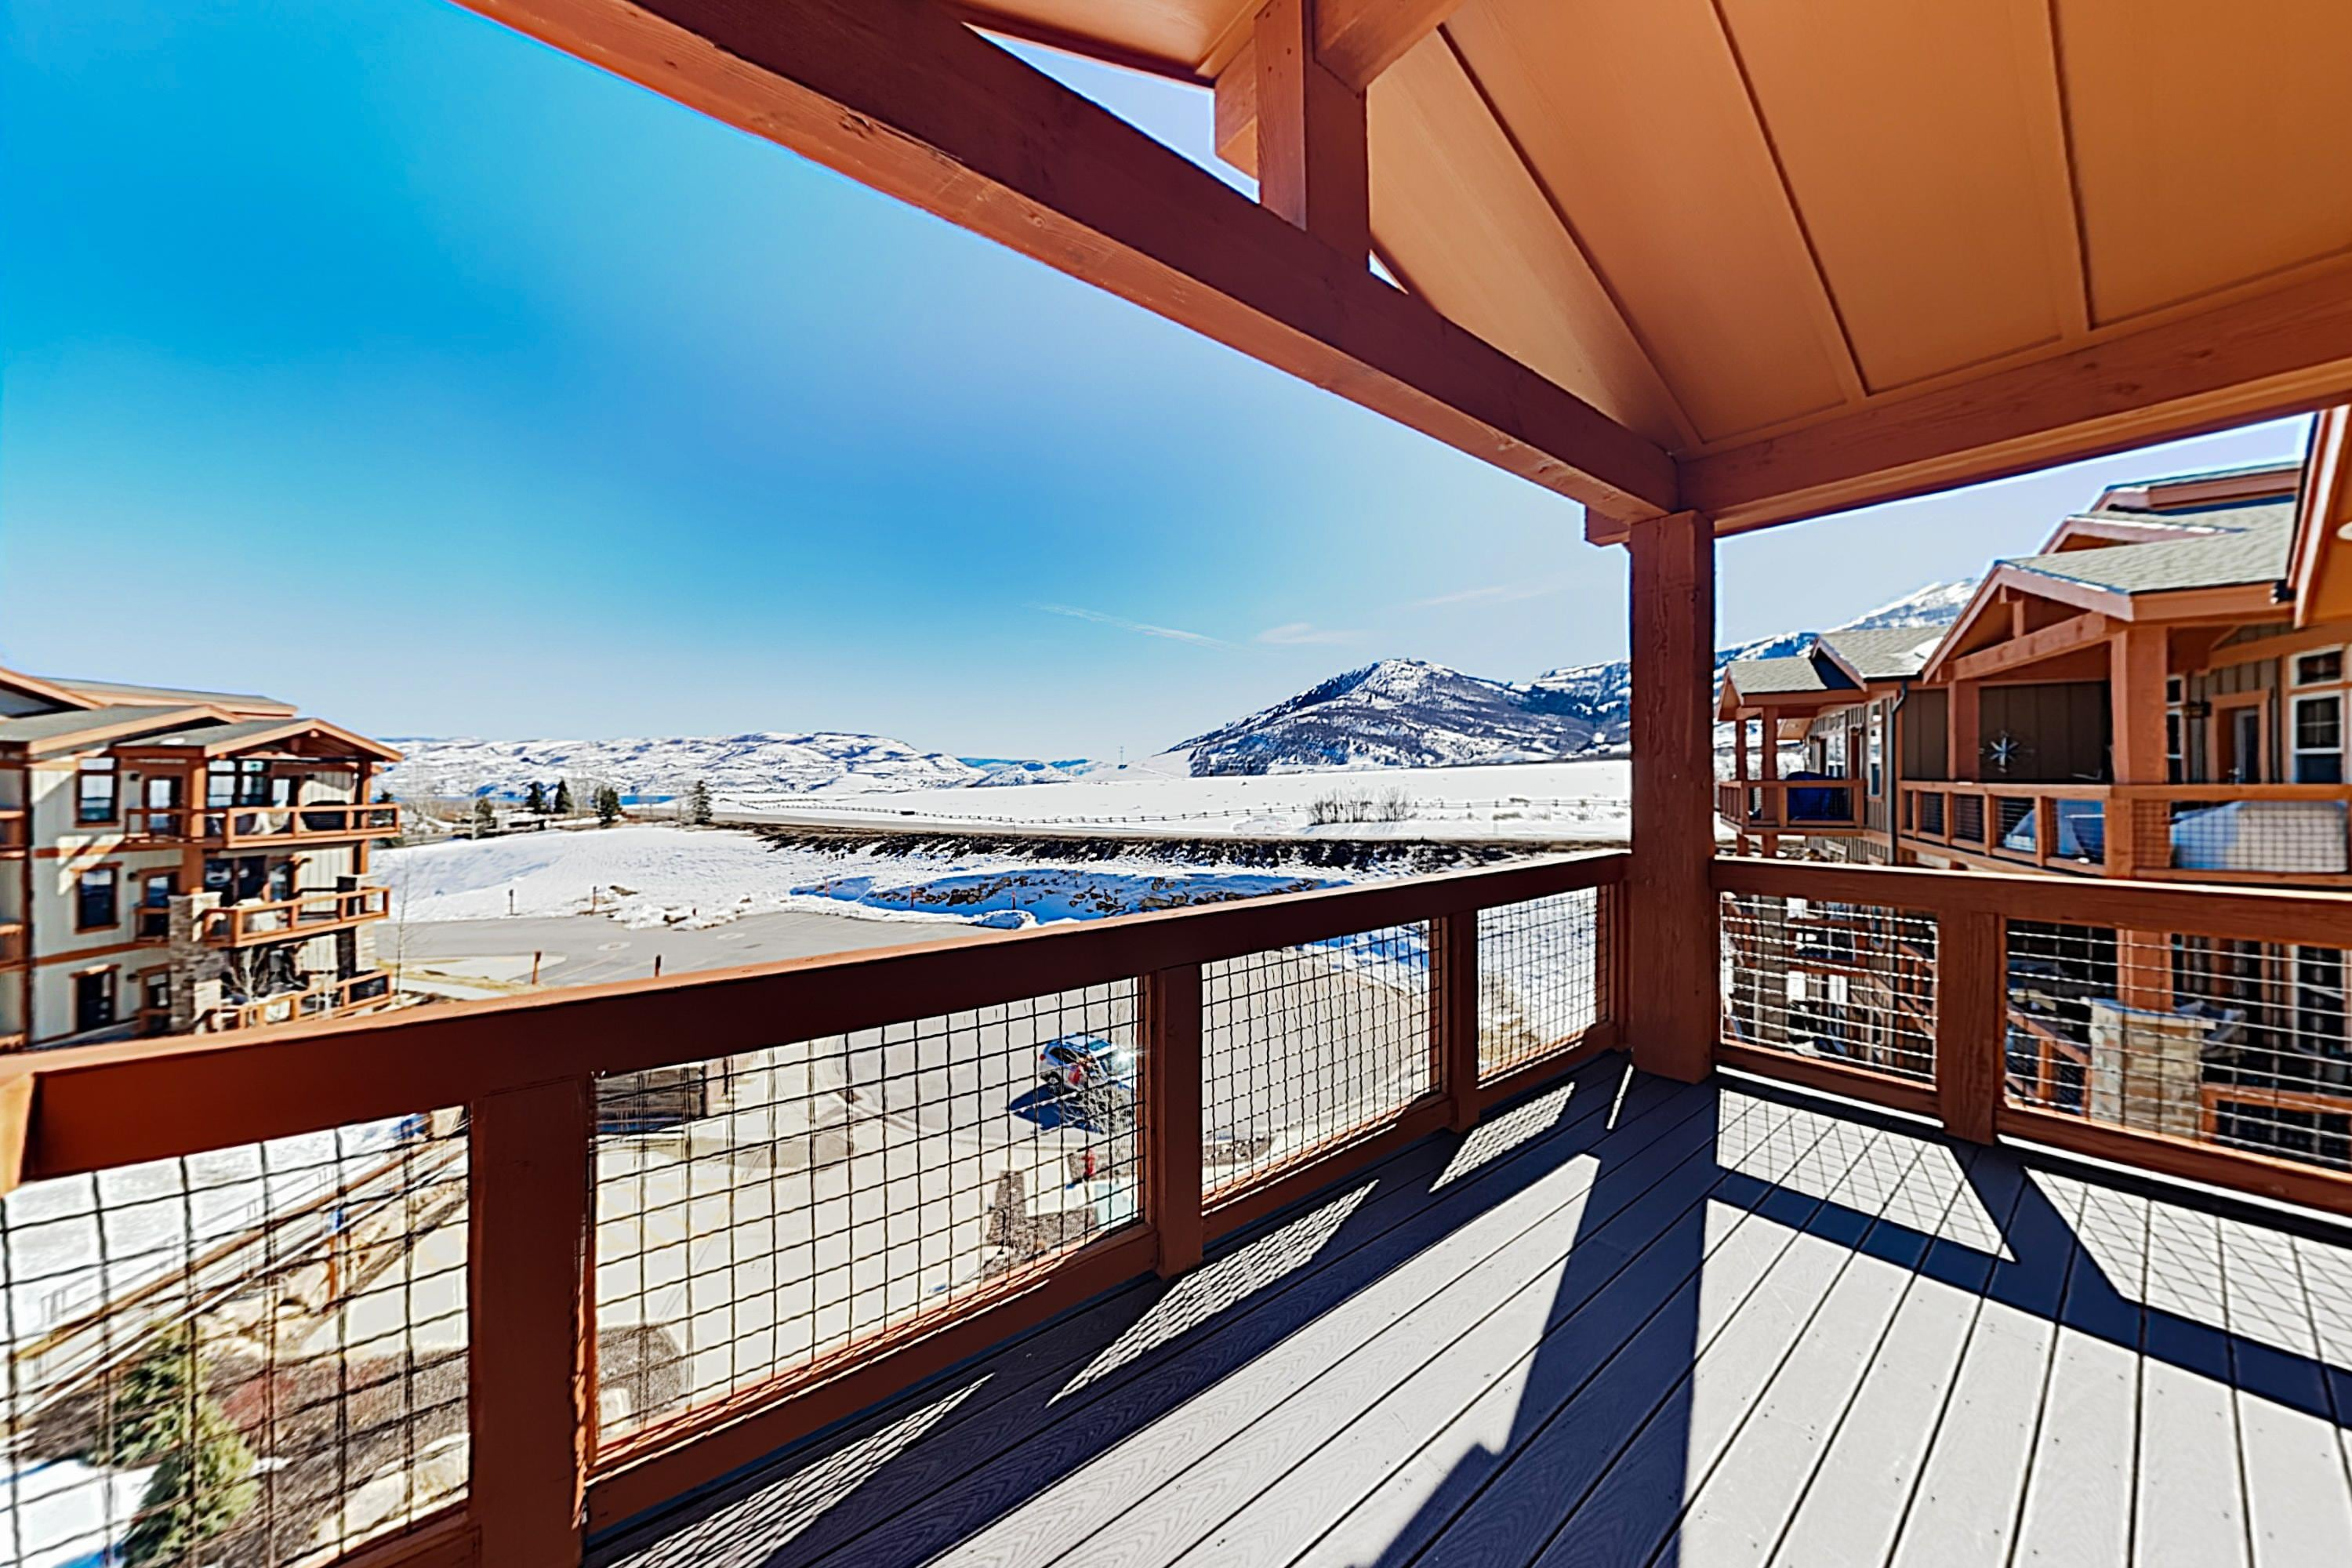 Incredible mountain views await on the covered balcony.